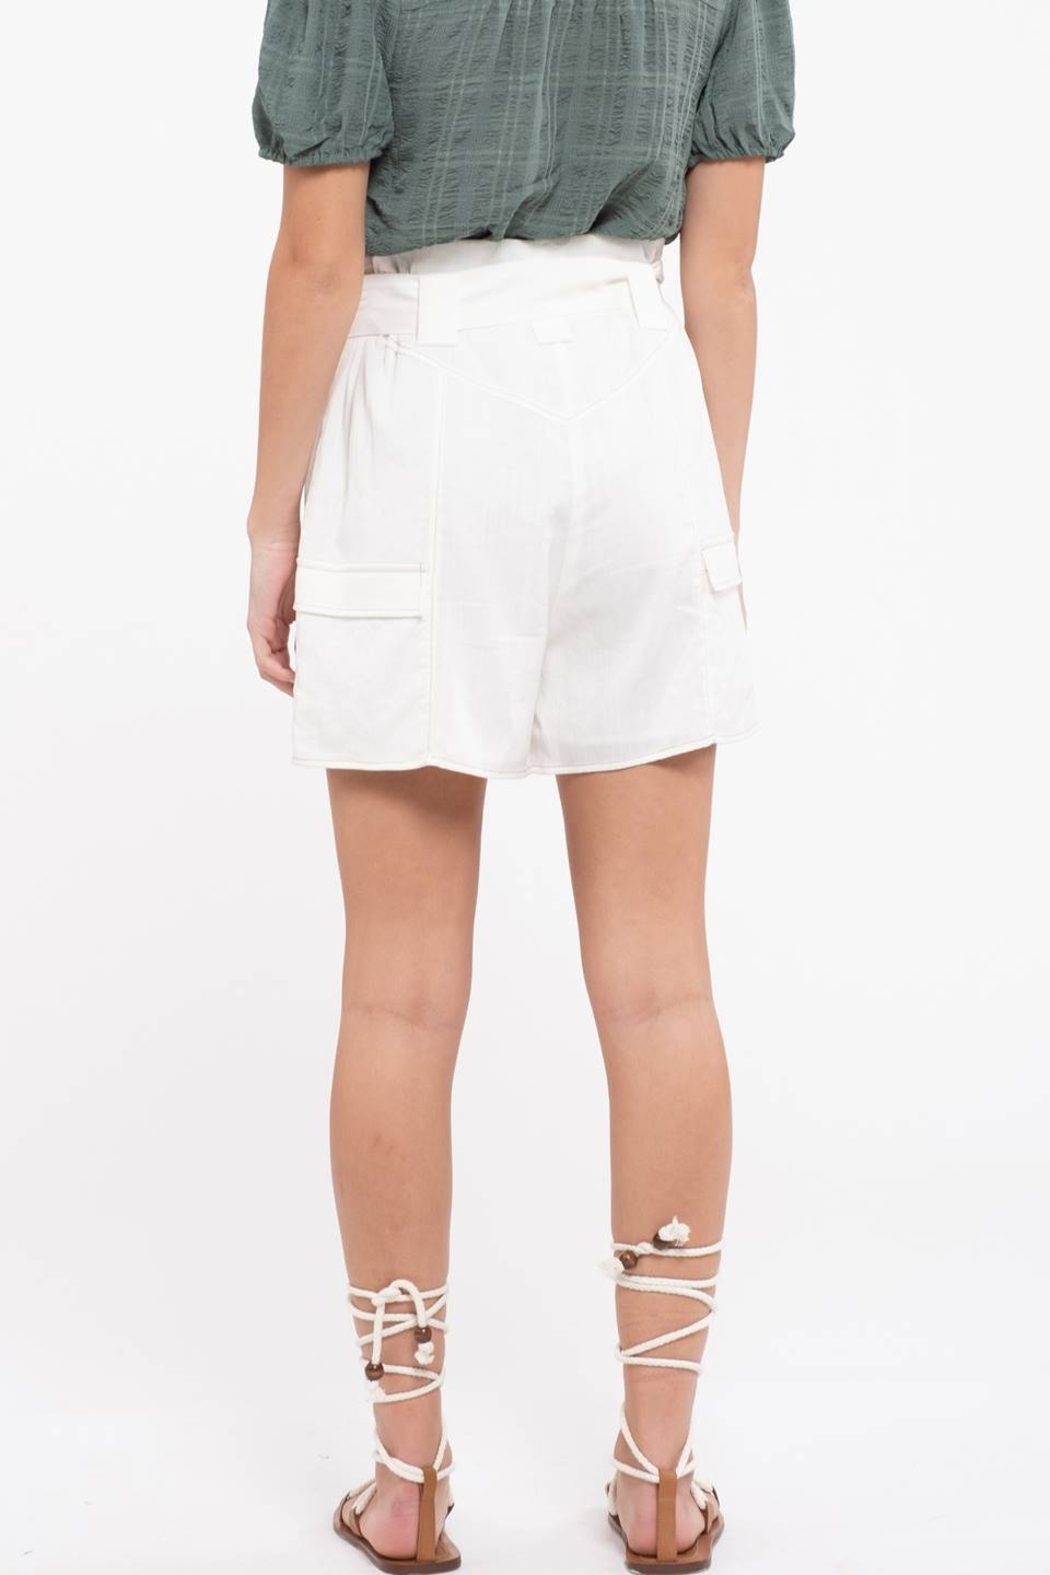 Moon River Off White High Waist Shorts - Front Full Image